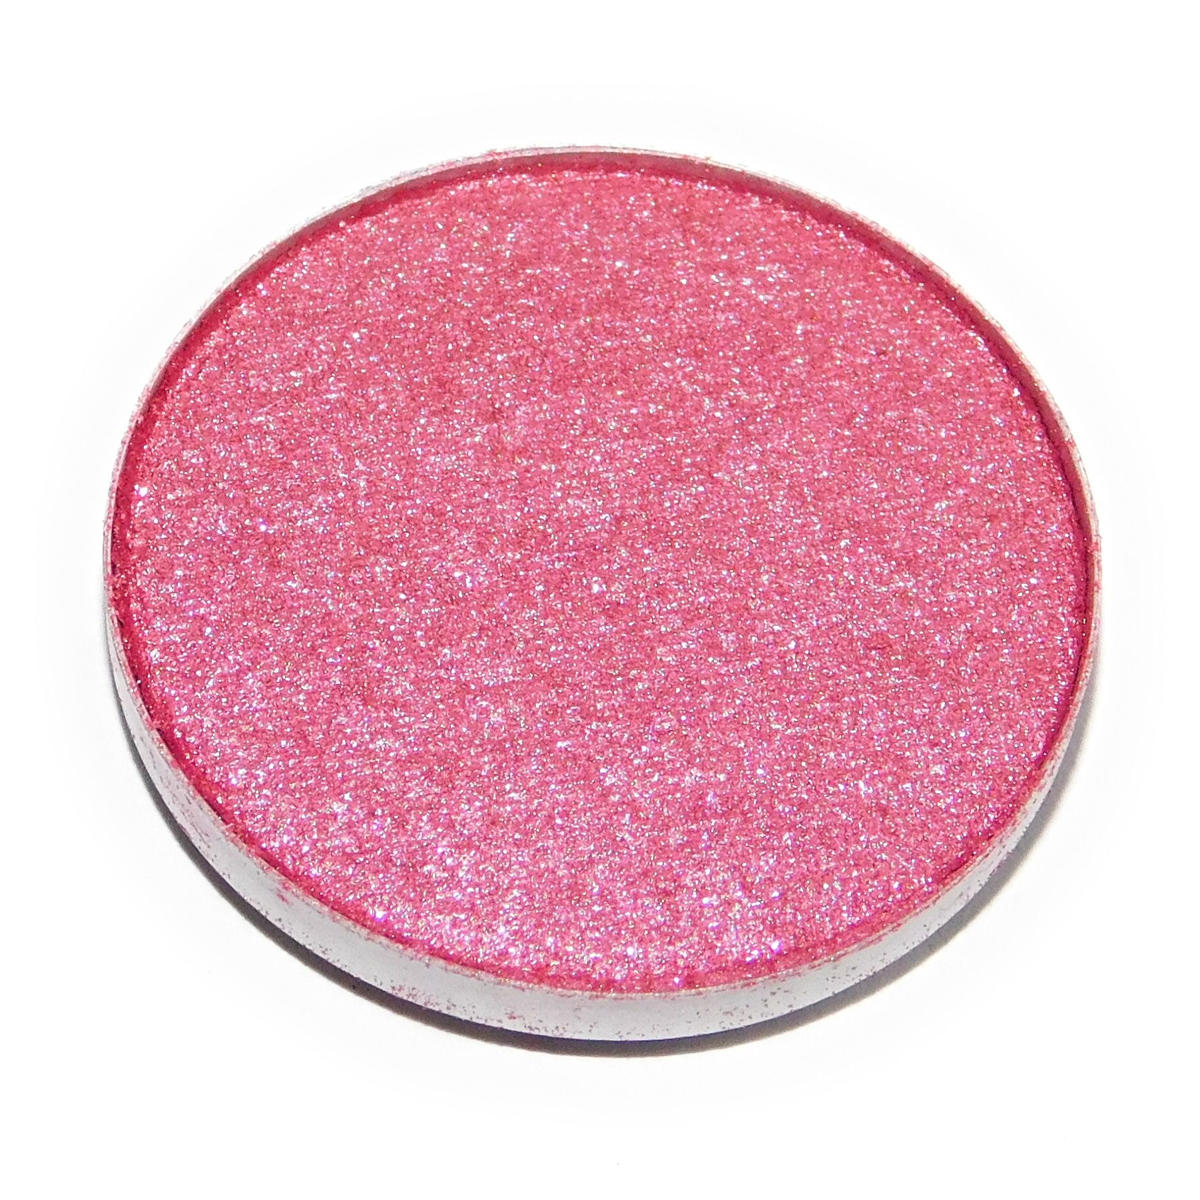 MAC Eyeshadow Refill Cherry Topped